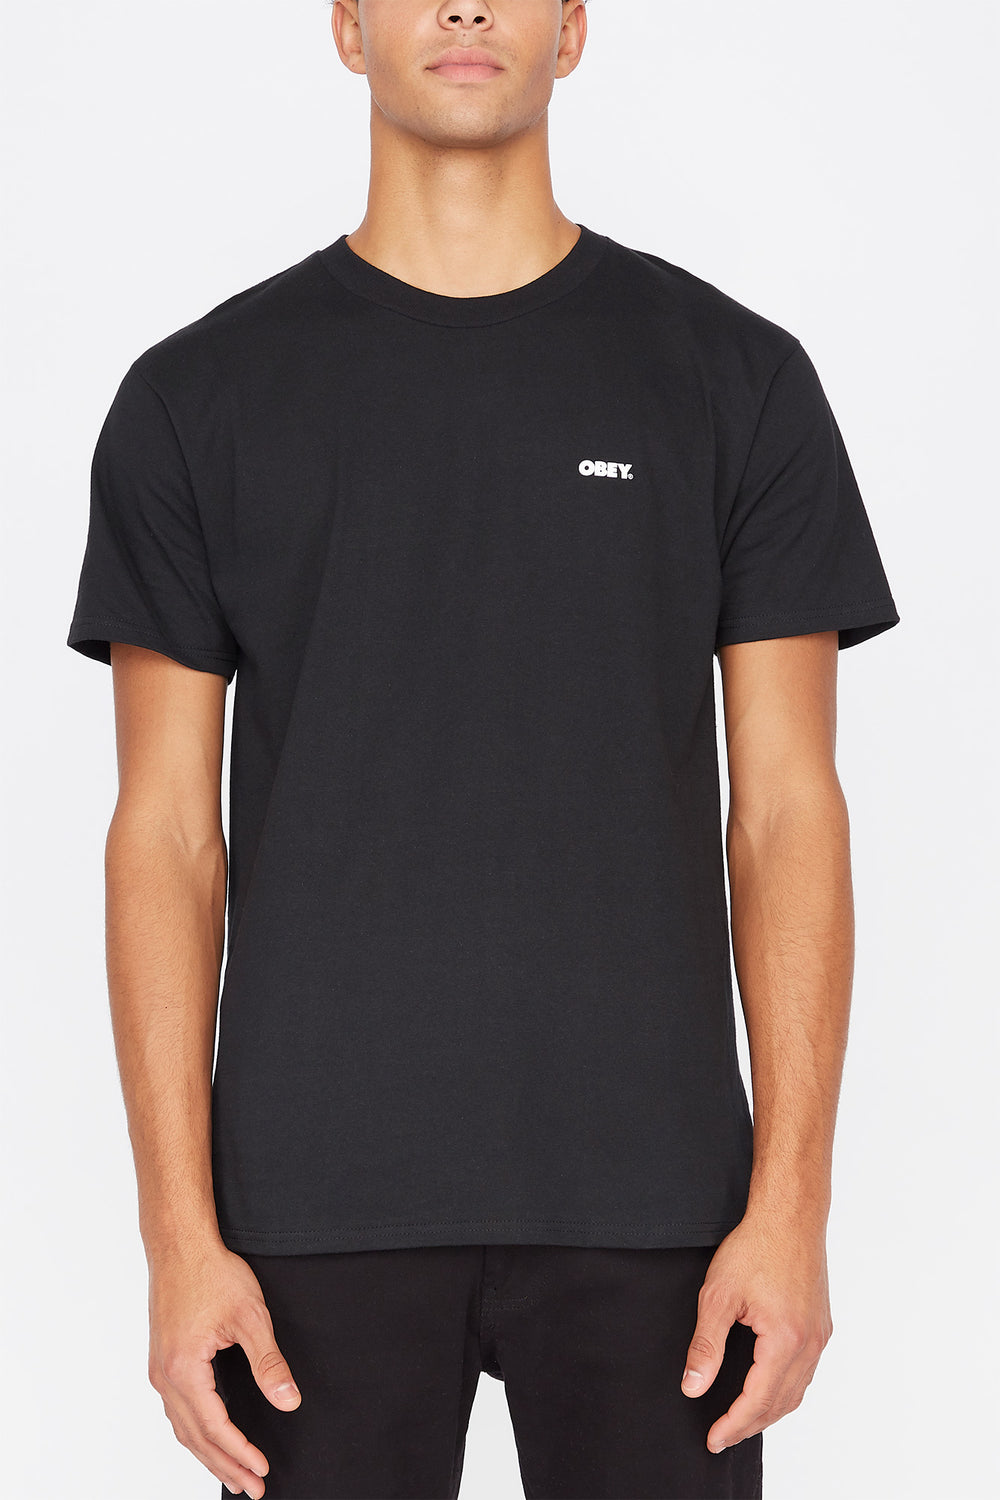 T-Shirt Power & Equality Obey Noir